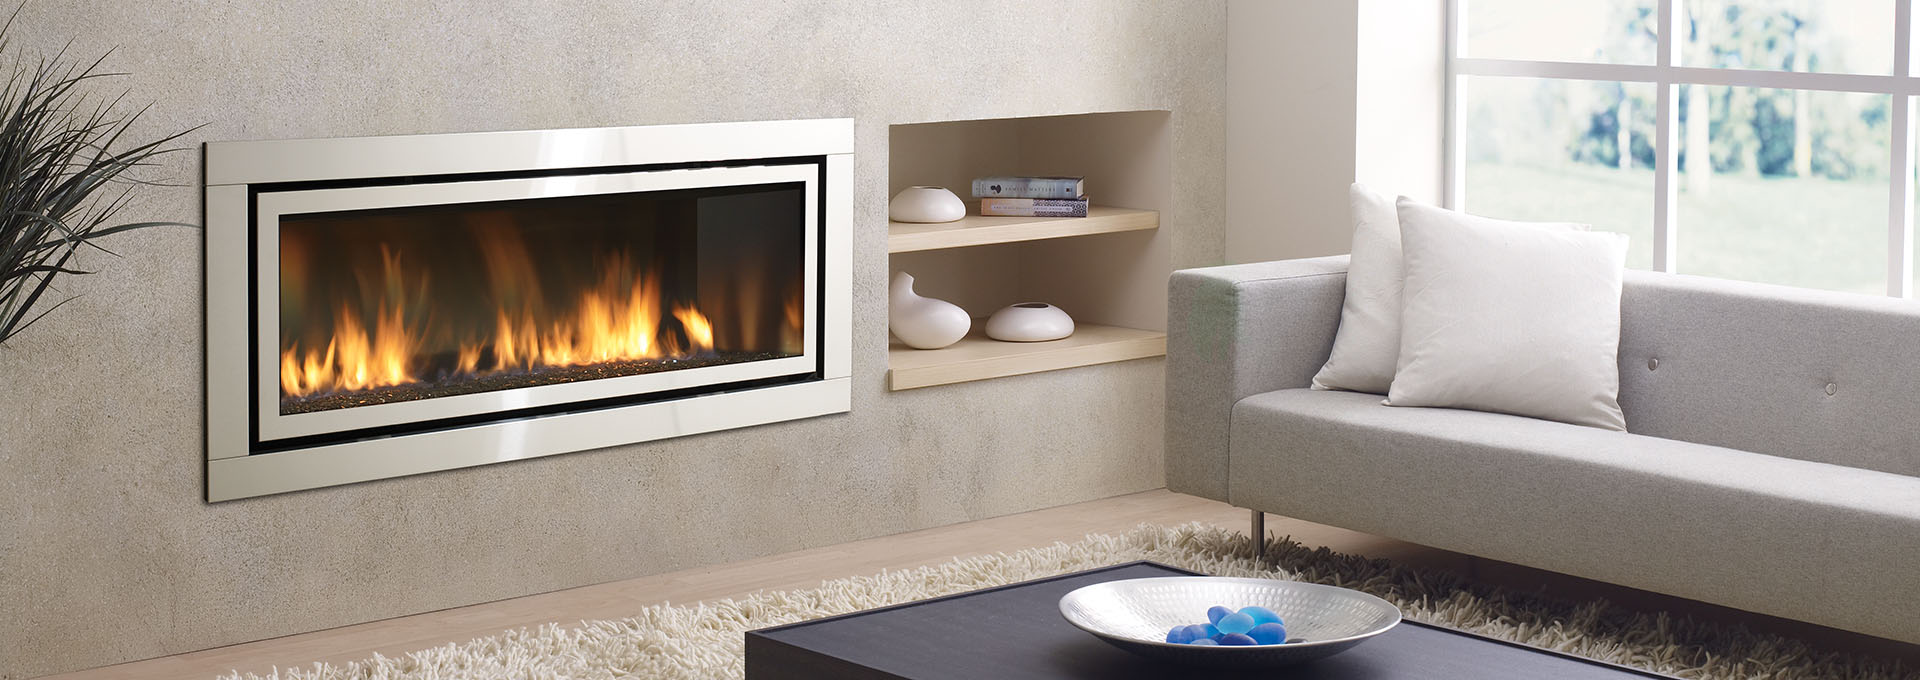 greenfire with fireplace fire gas fascia shown regency black c in fireplaces products log wall